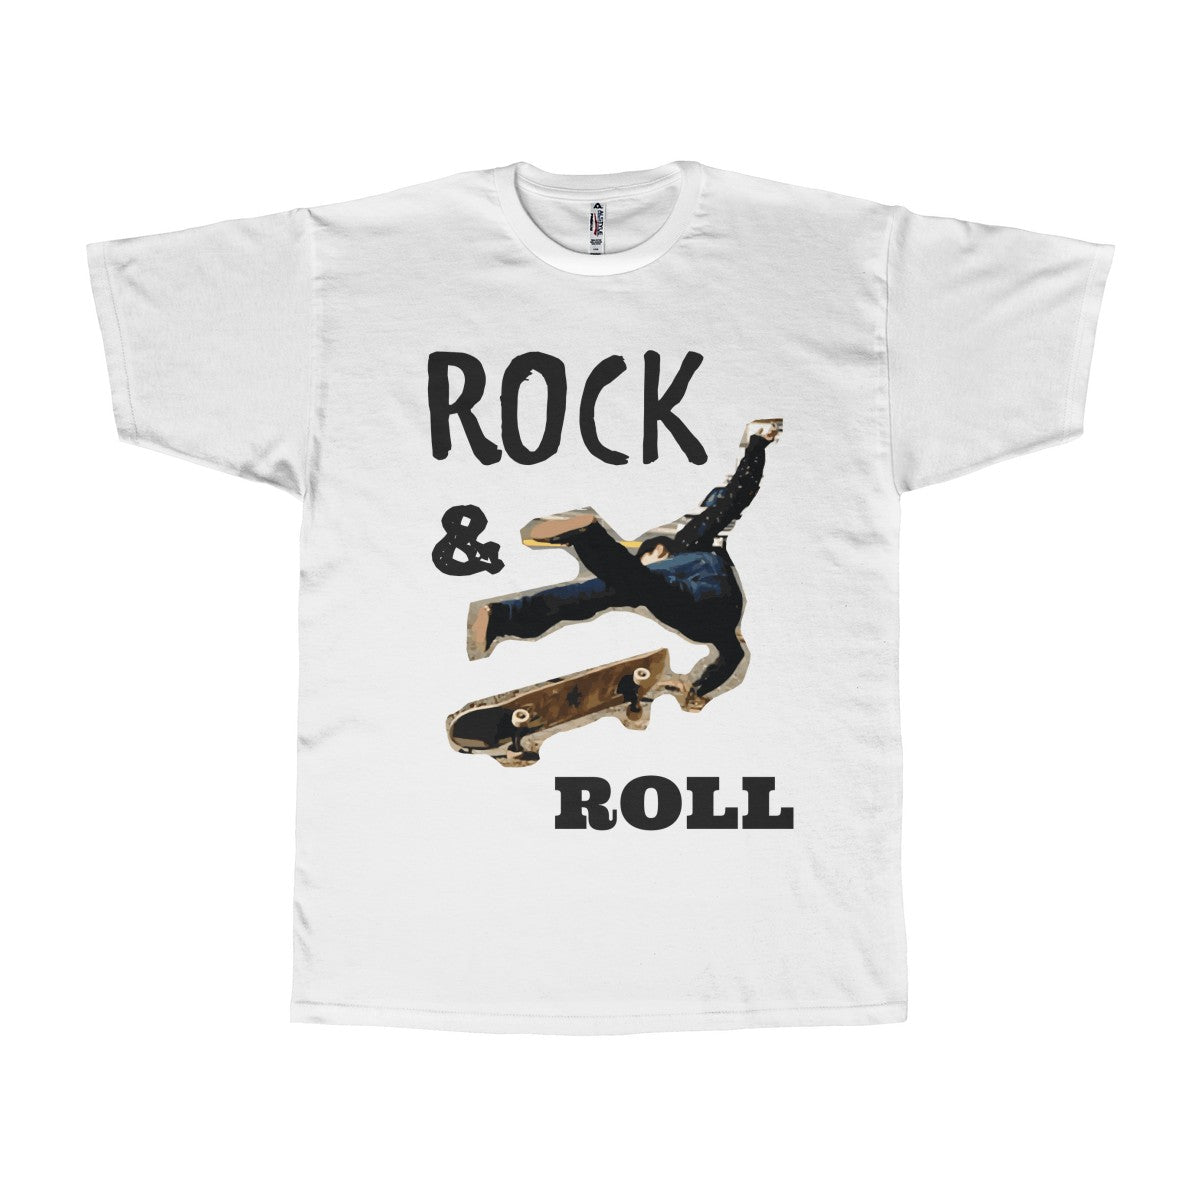 Rock & Roll Unisex Adult Tee